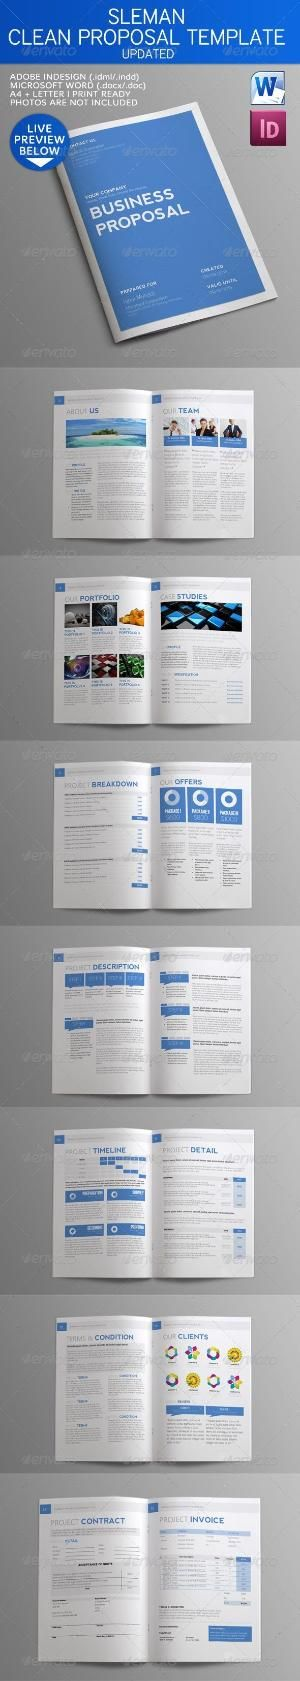 The 25+ best Latex resume template ideas on Pinterest Latex - resume templates latex